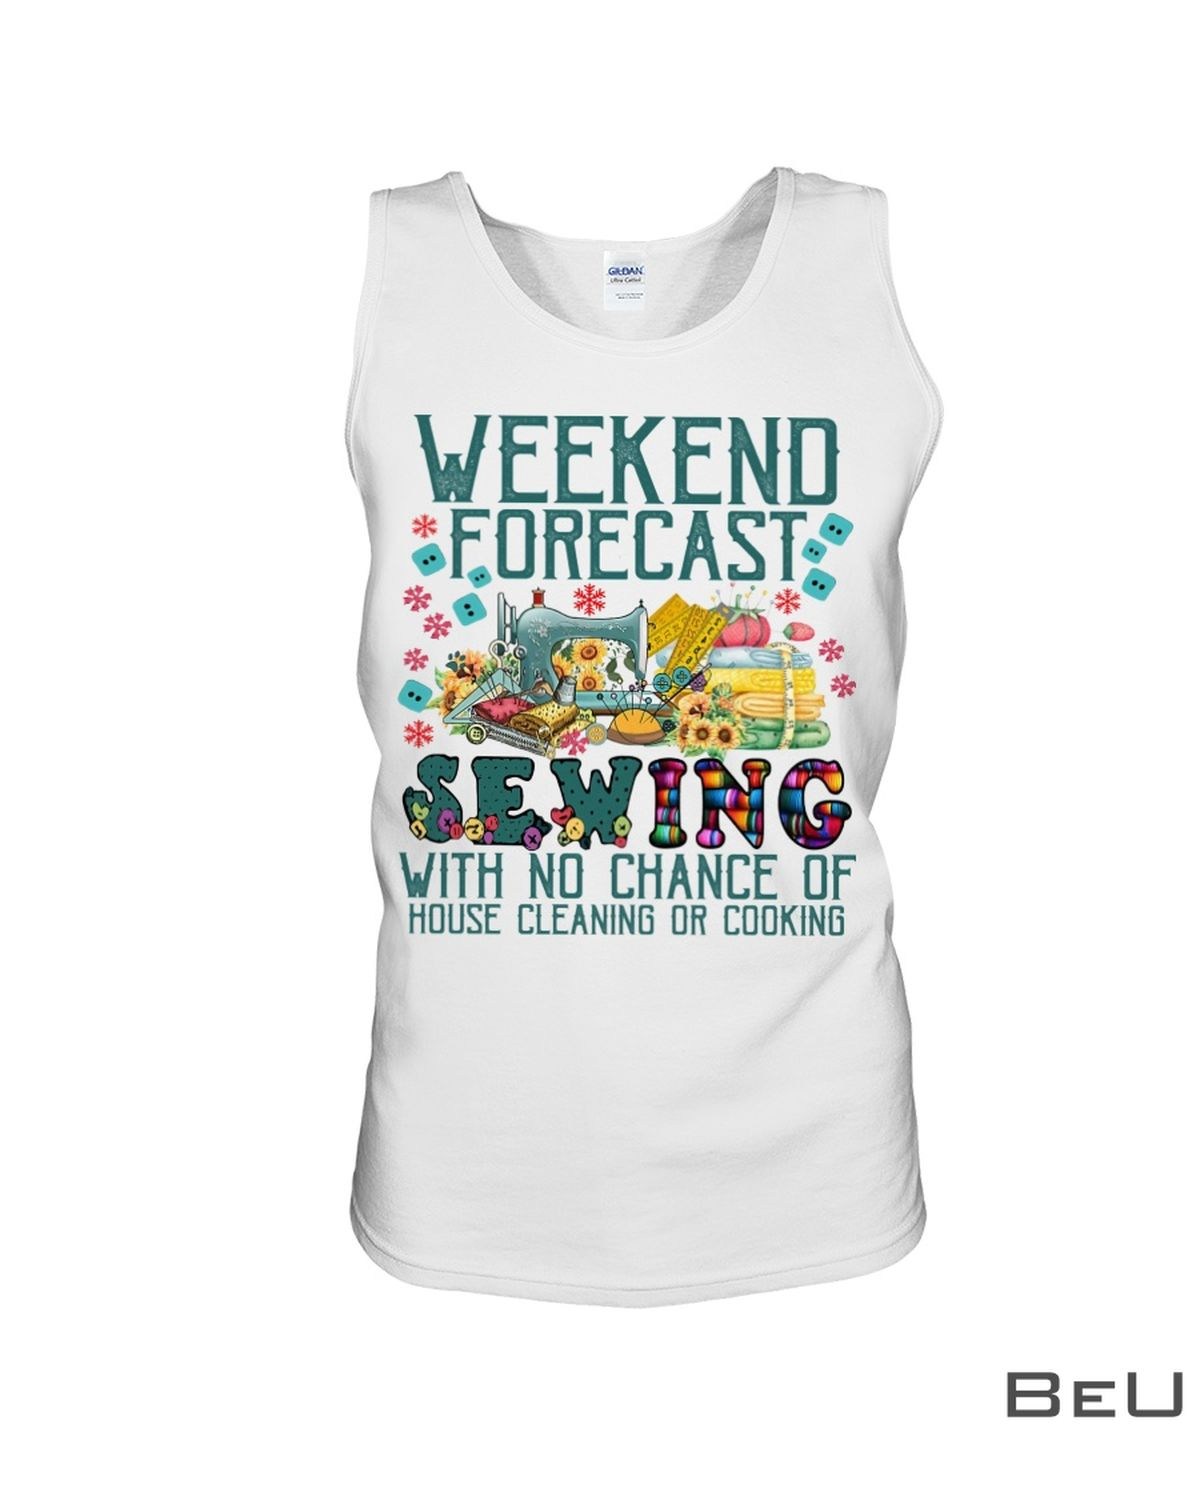 Weekend Forecast Sewing With No Chance Of House Cleaning Or Cooking Shirtx